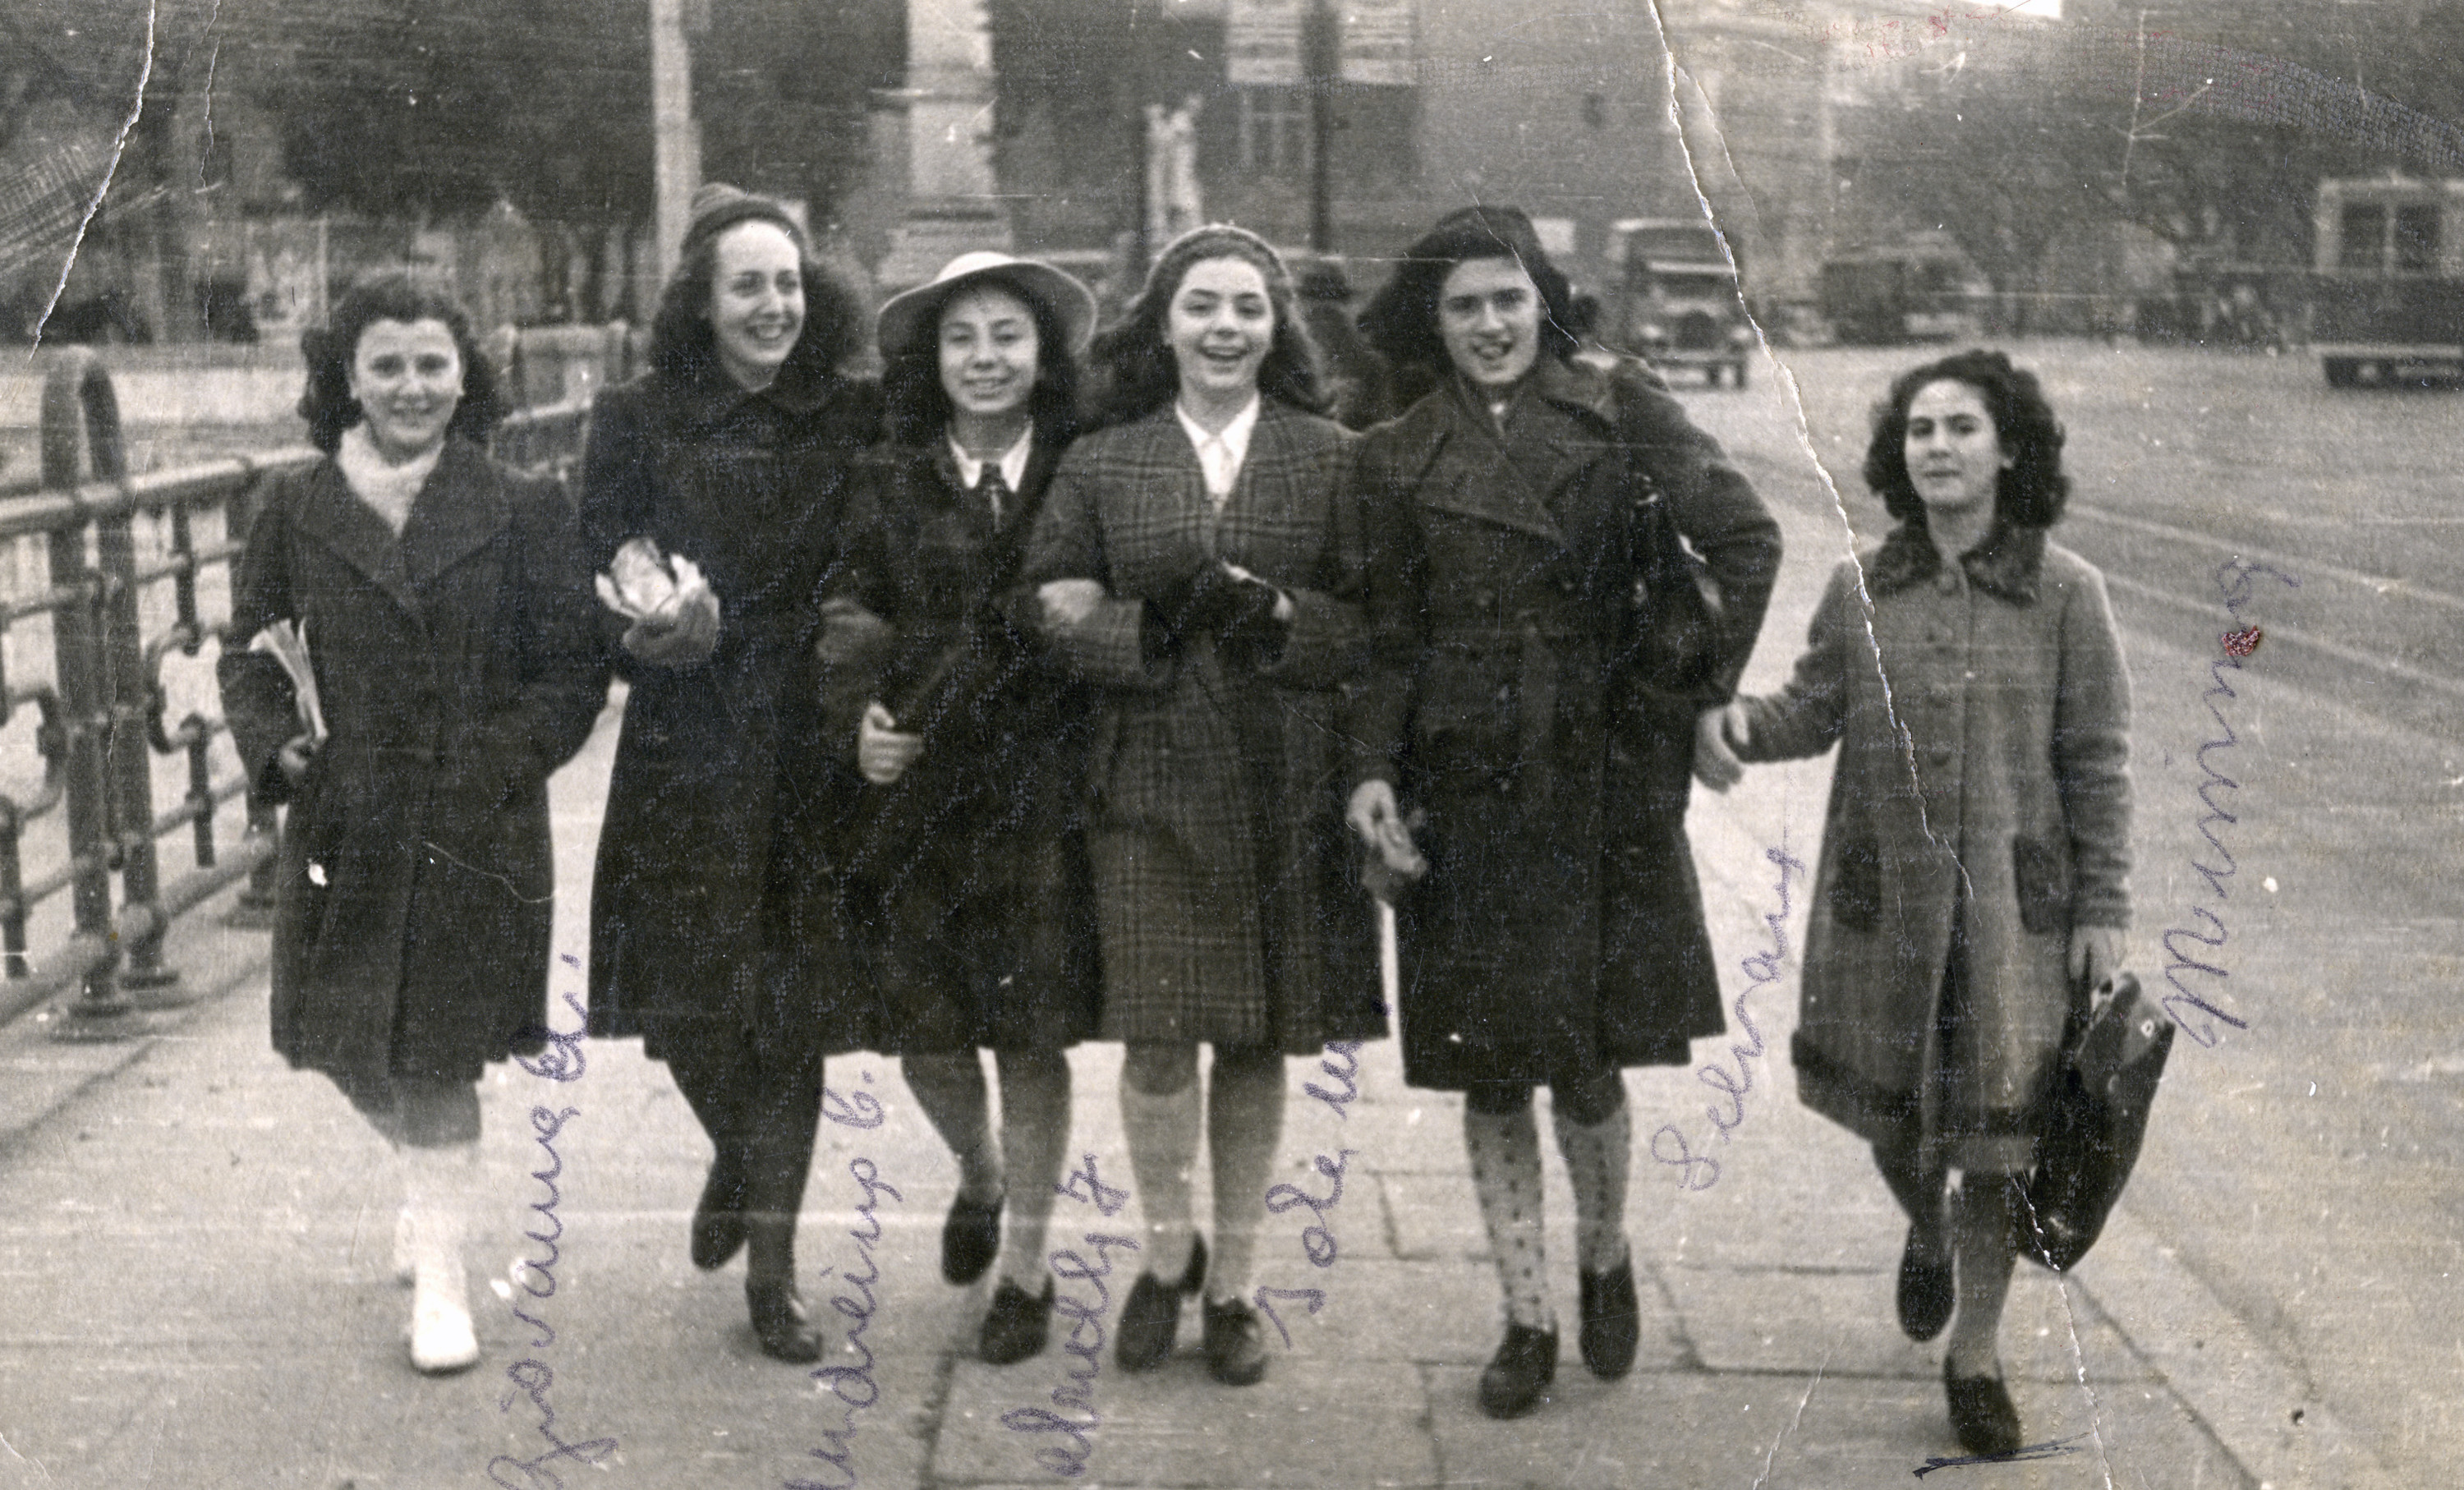 A group of friends walks down the street arm in arm in wartime Rome.  Among those pictured is Emma Di Capua (far right).